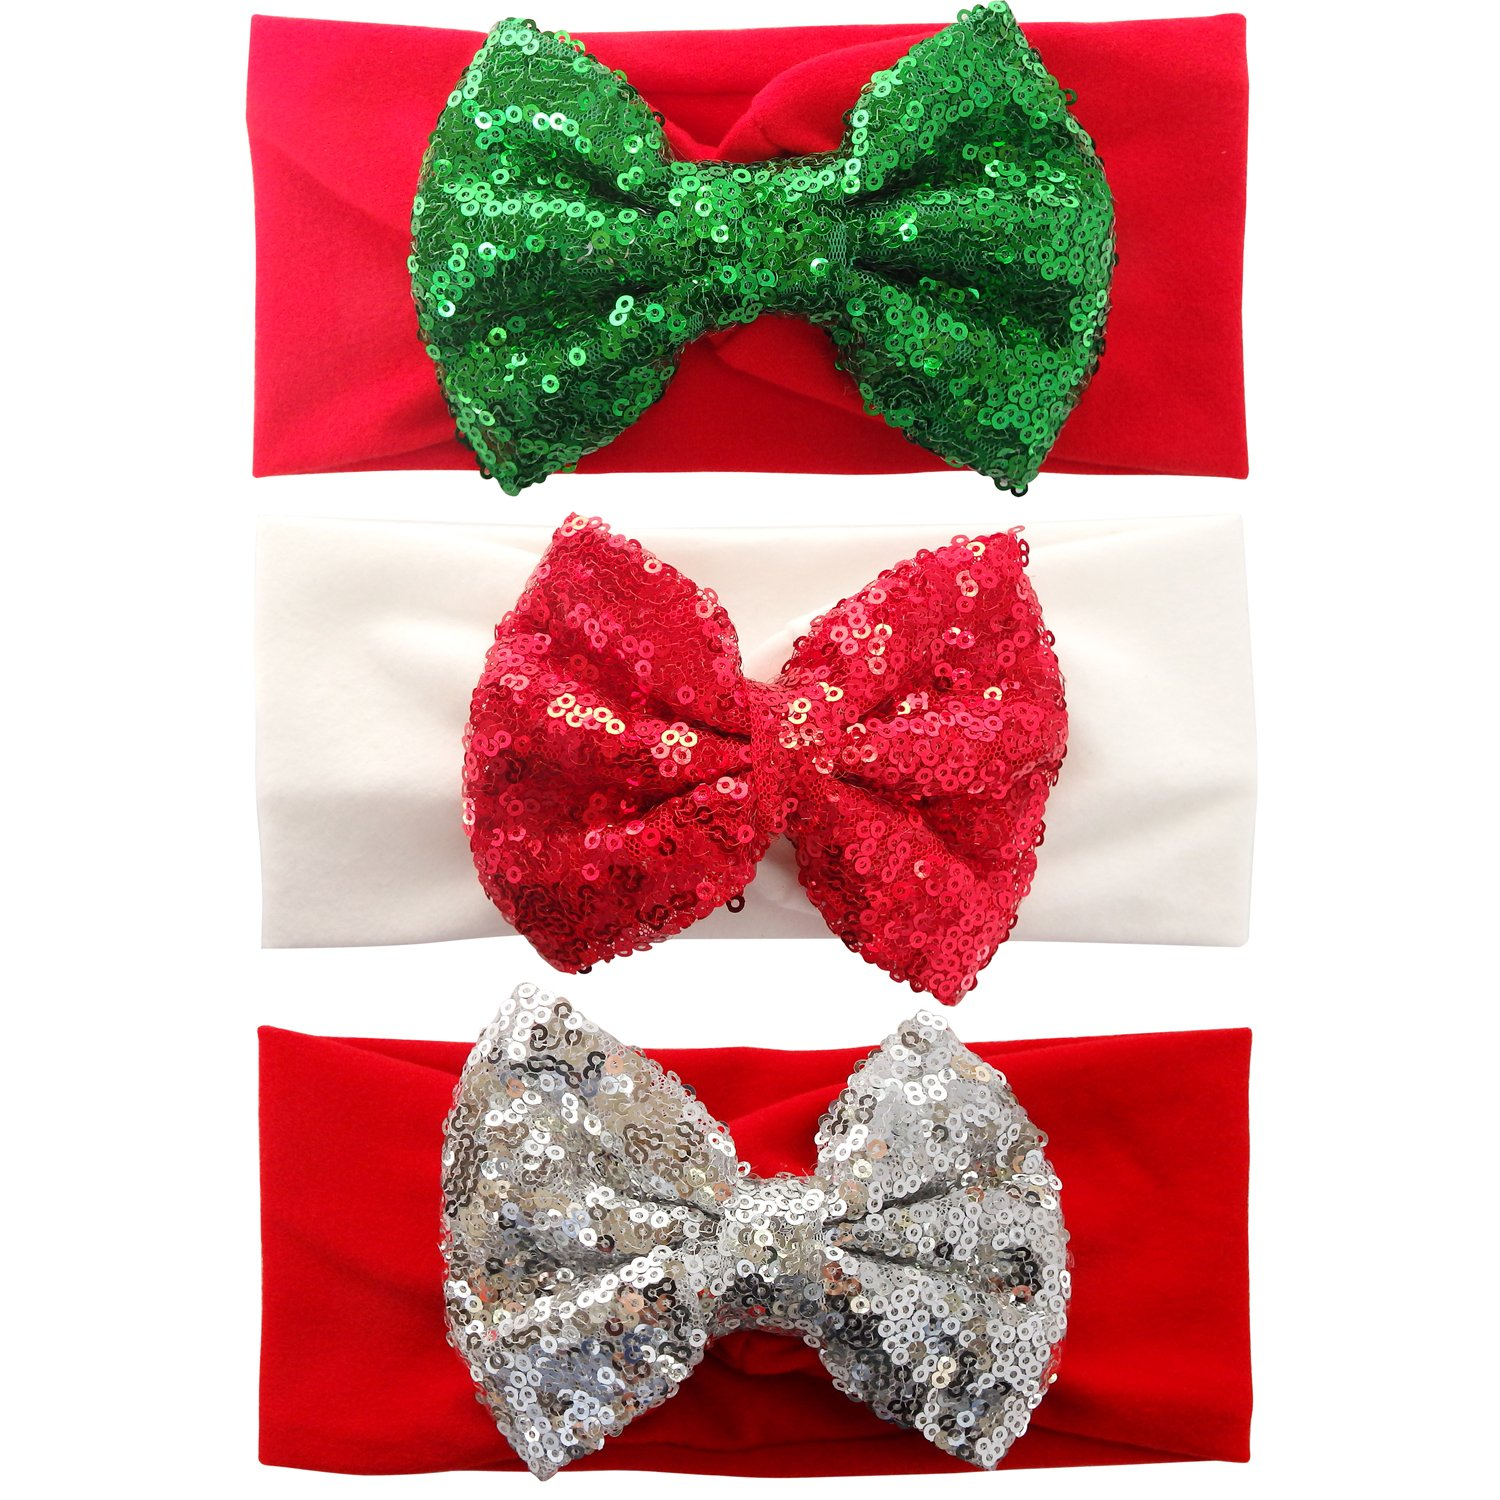 3pcs Christmas Bows Sequin Headwraps Baby Girl Headbands Set Bulk for Photograph Red White RareLove